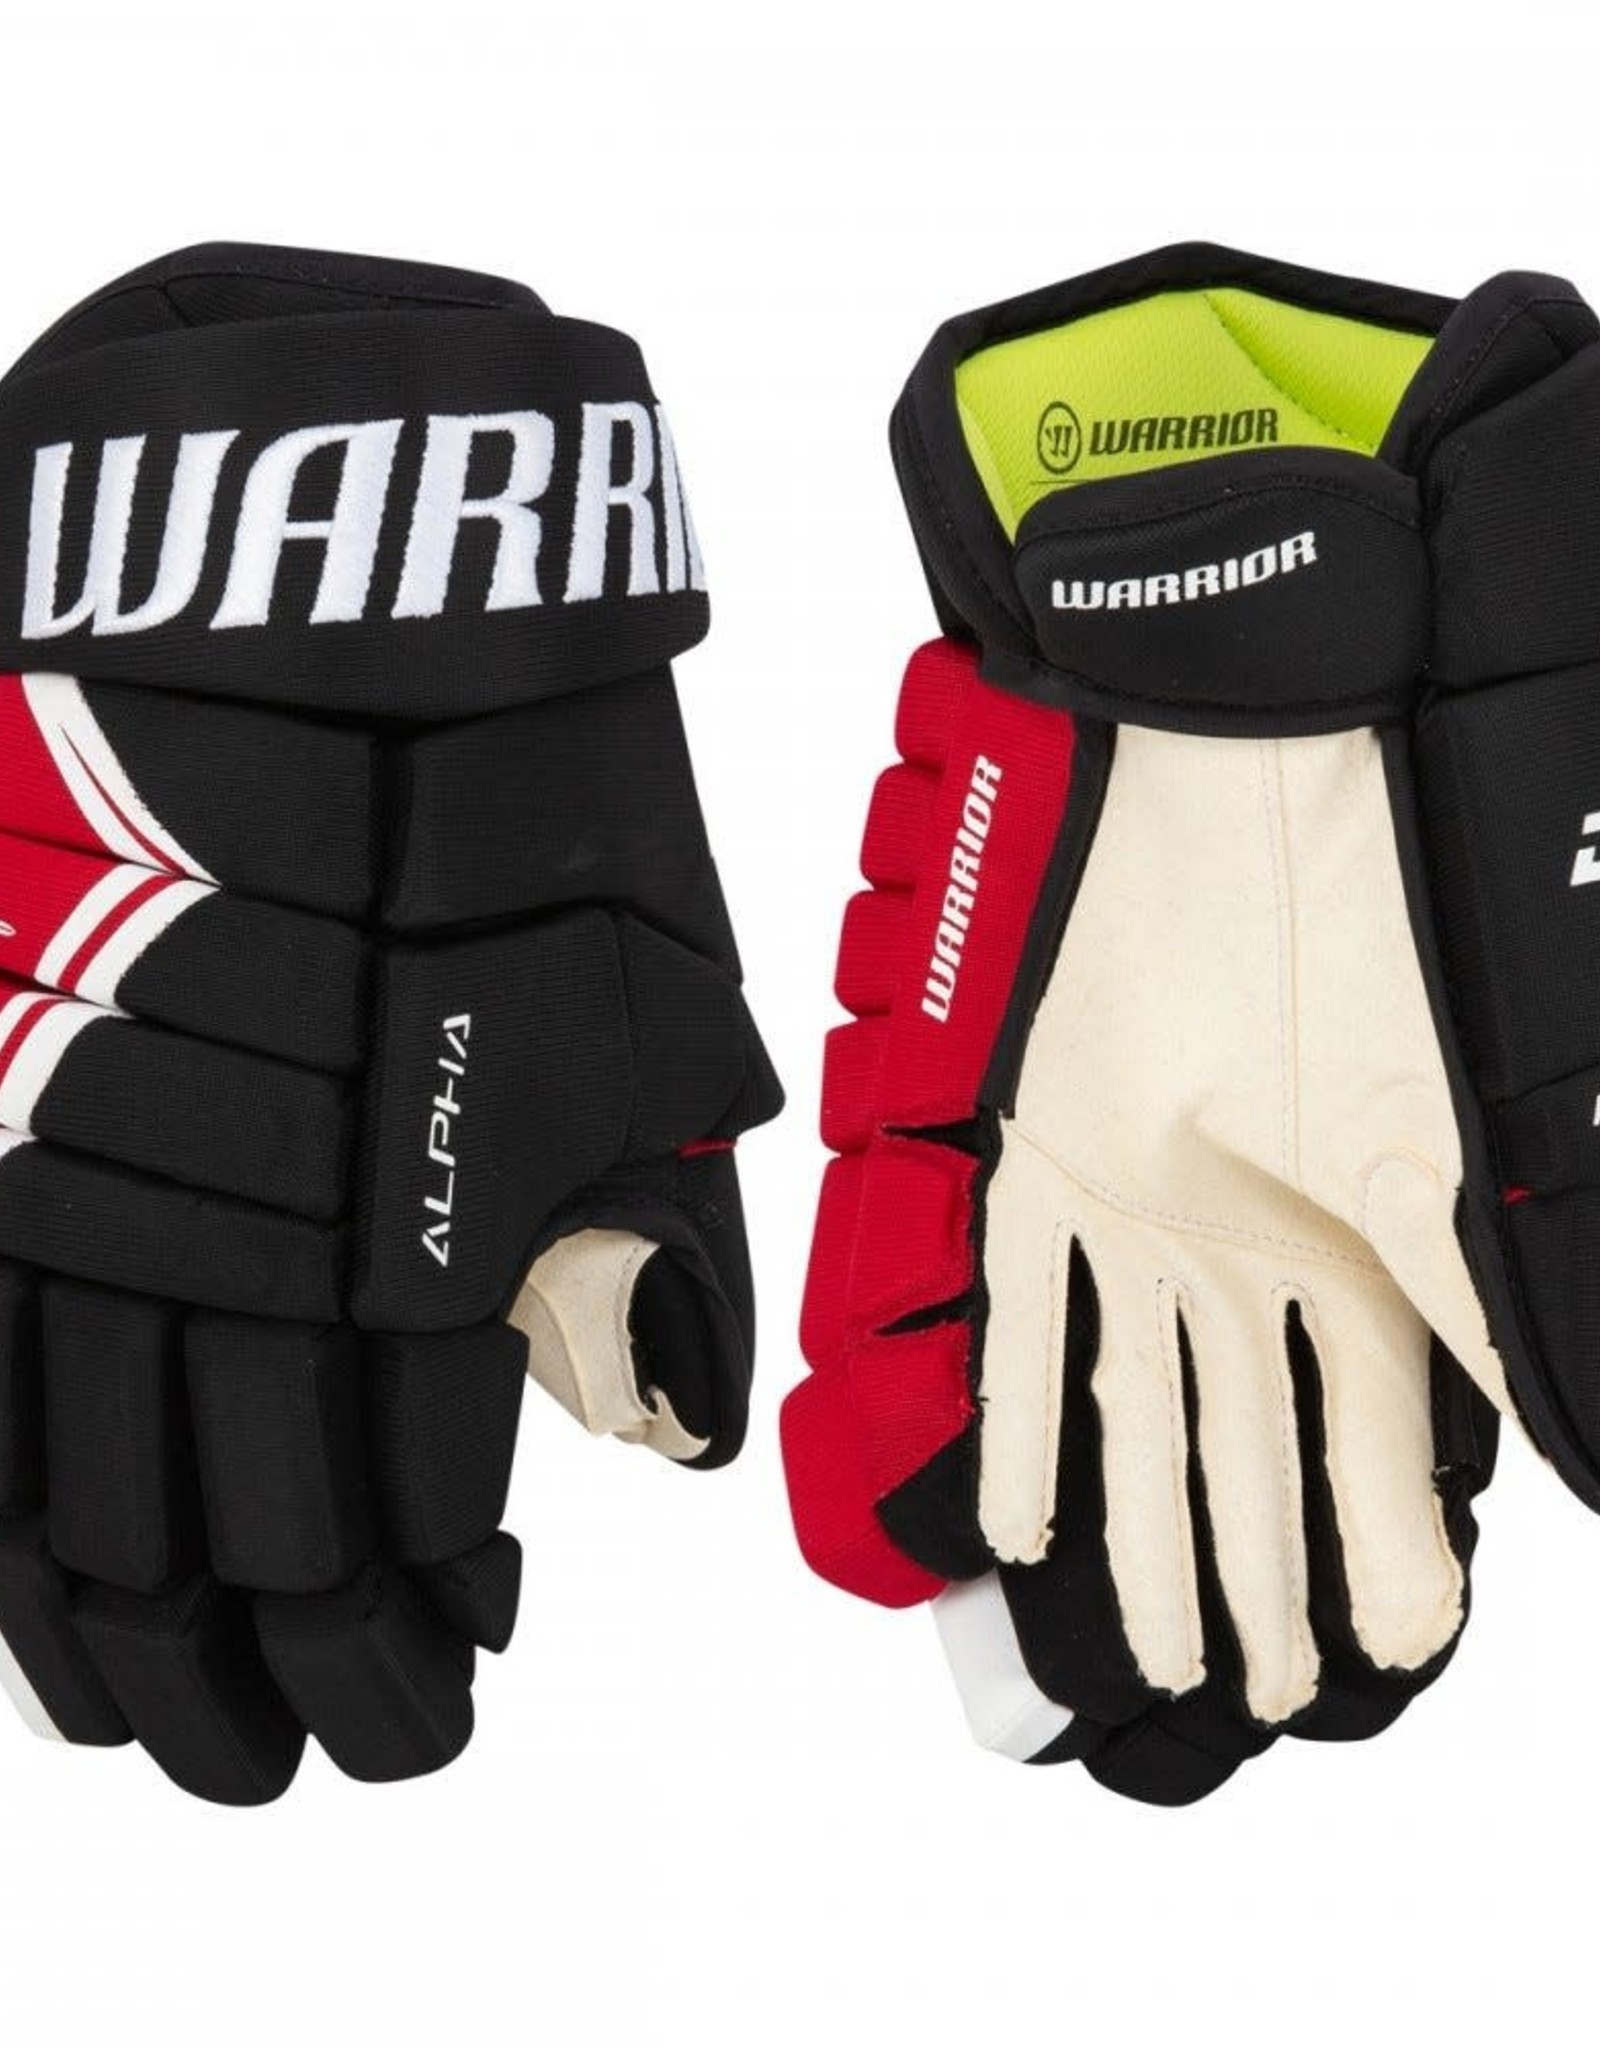 DX4 Senior Glove NRW NV/RD/WH 13